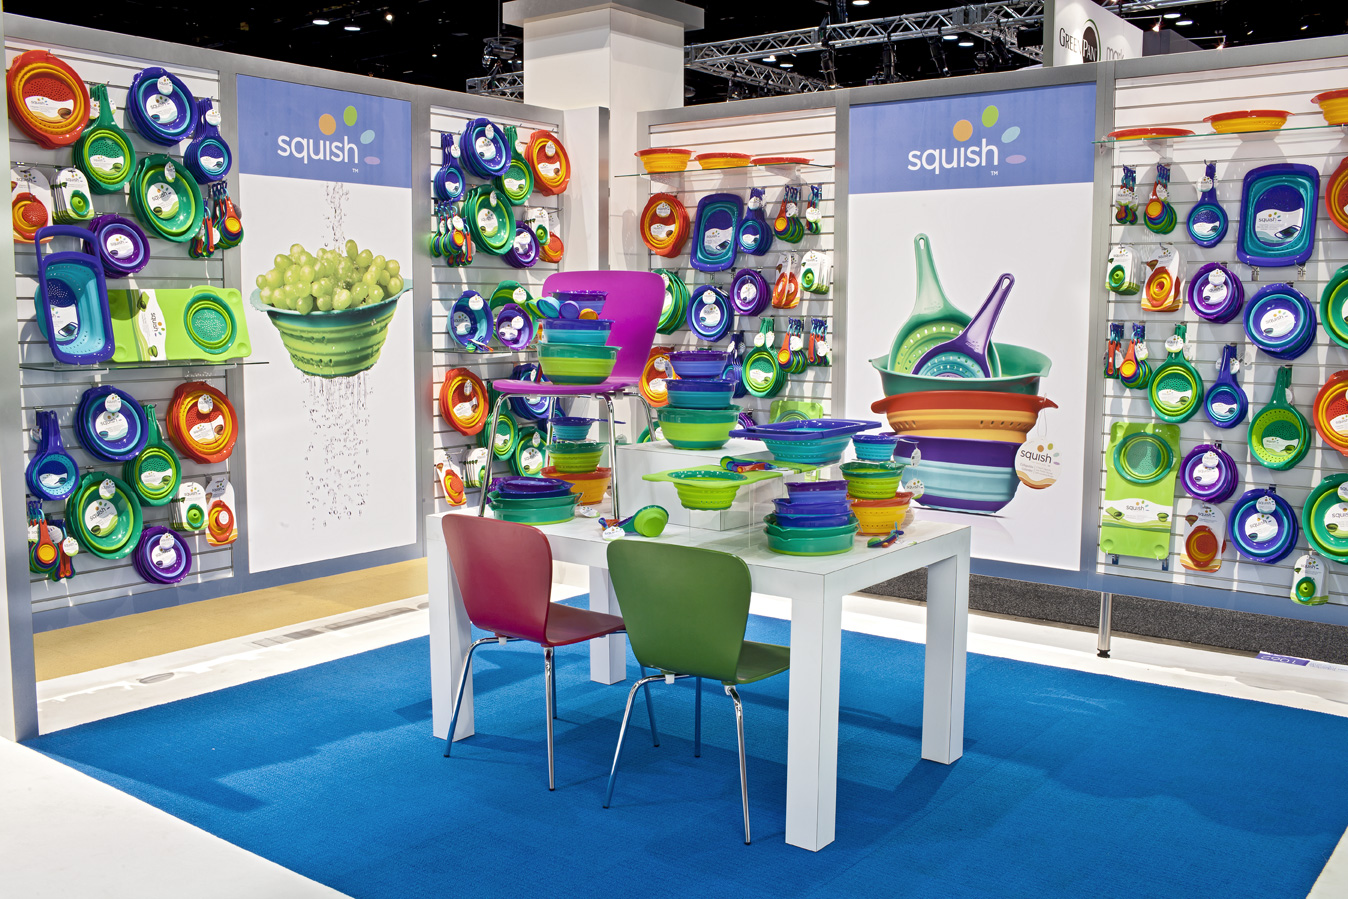 Squish launch at International Housewares show